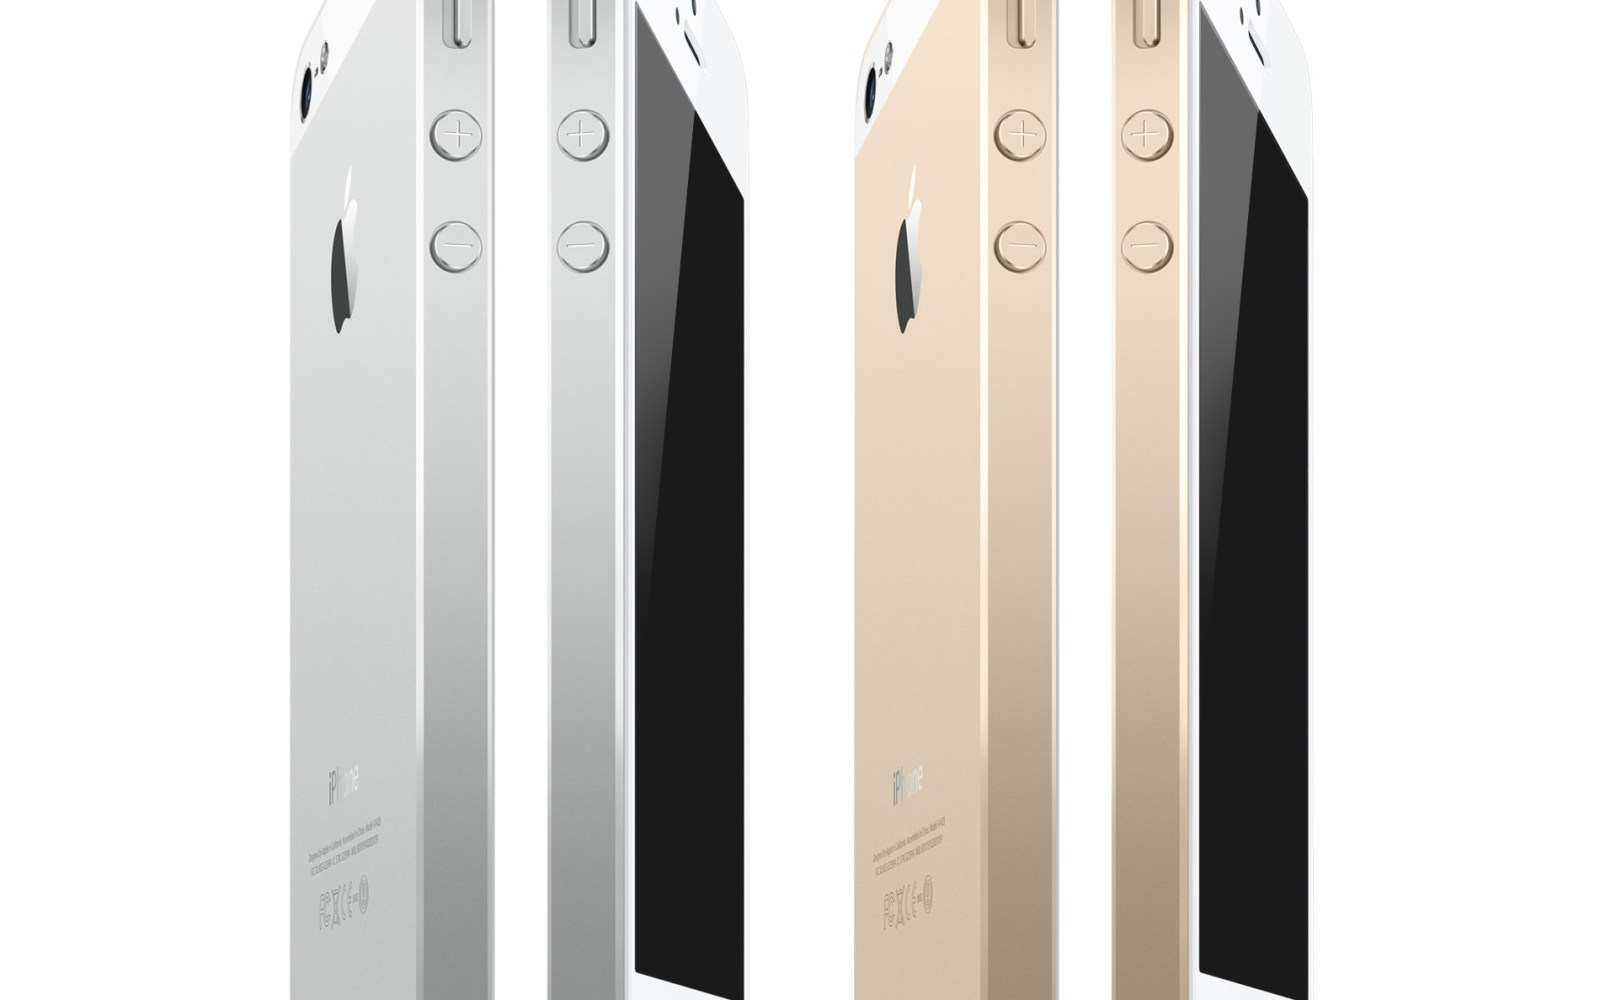 iPhone 5S will come in gold & likely sport fingerprint sensor, iPad iOS 7 running behind